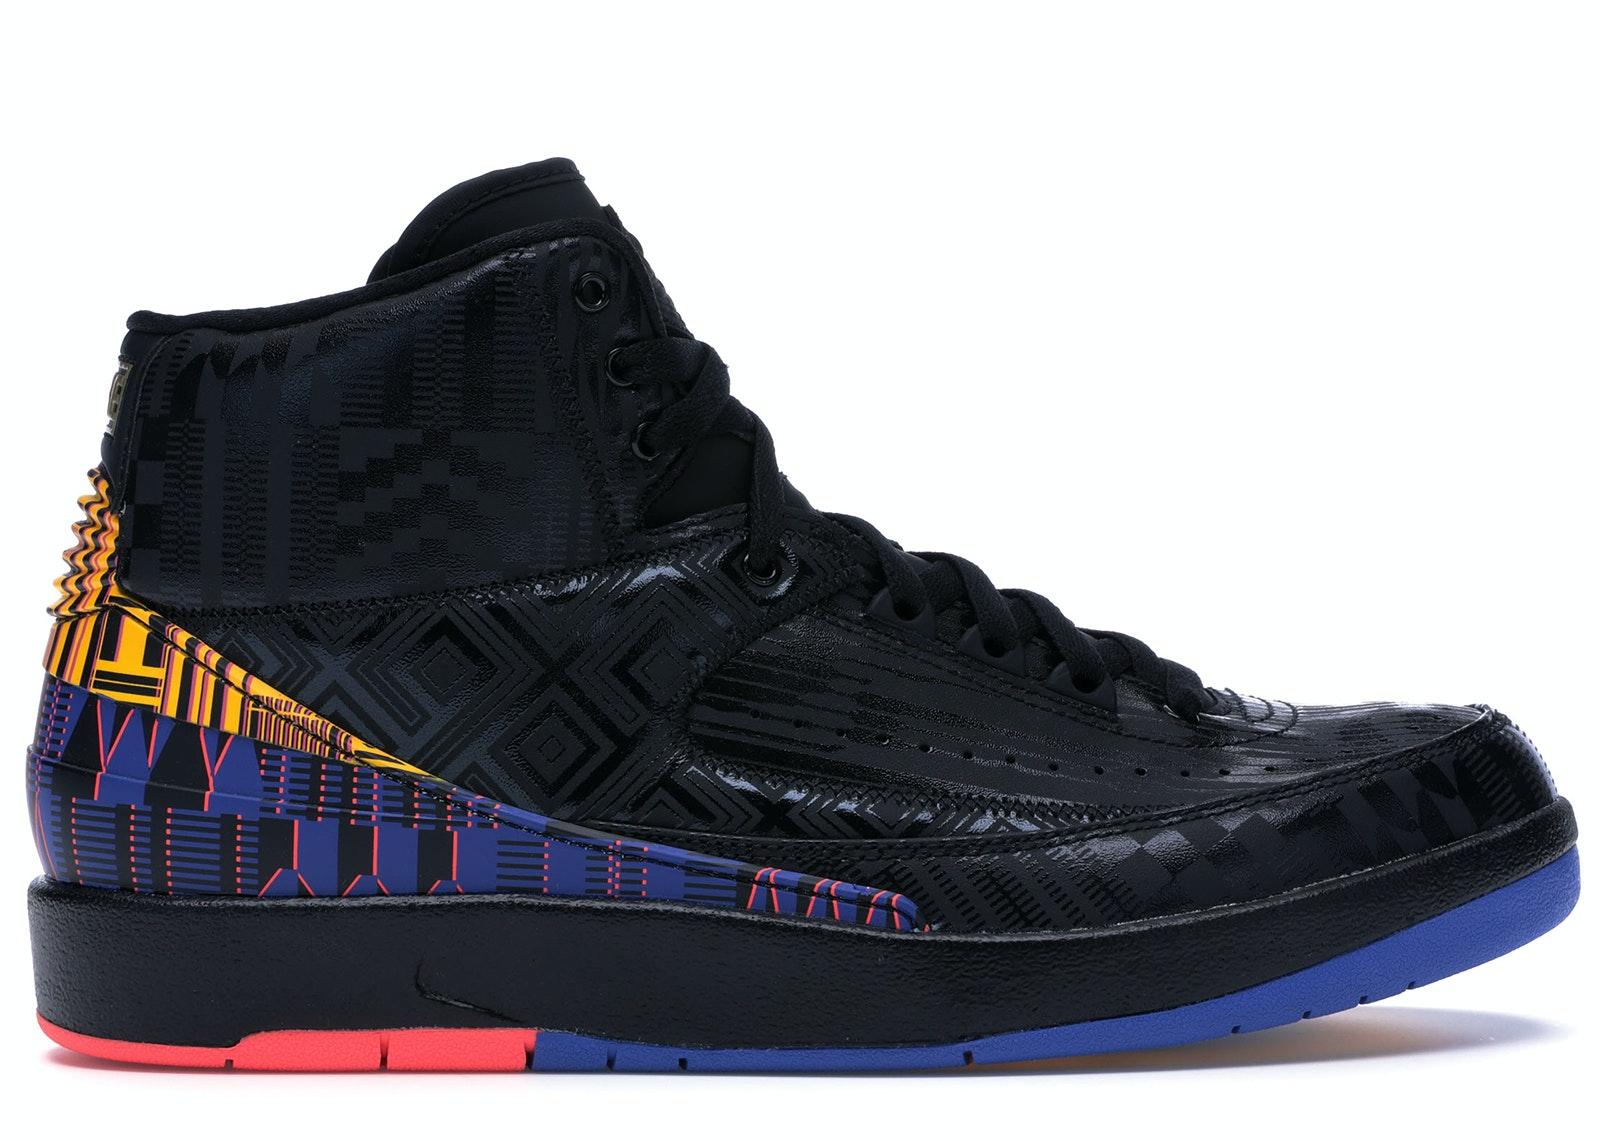 Jordan 2 Retro Black History Month (2019)